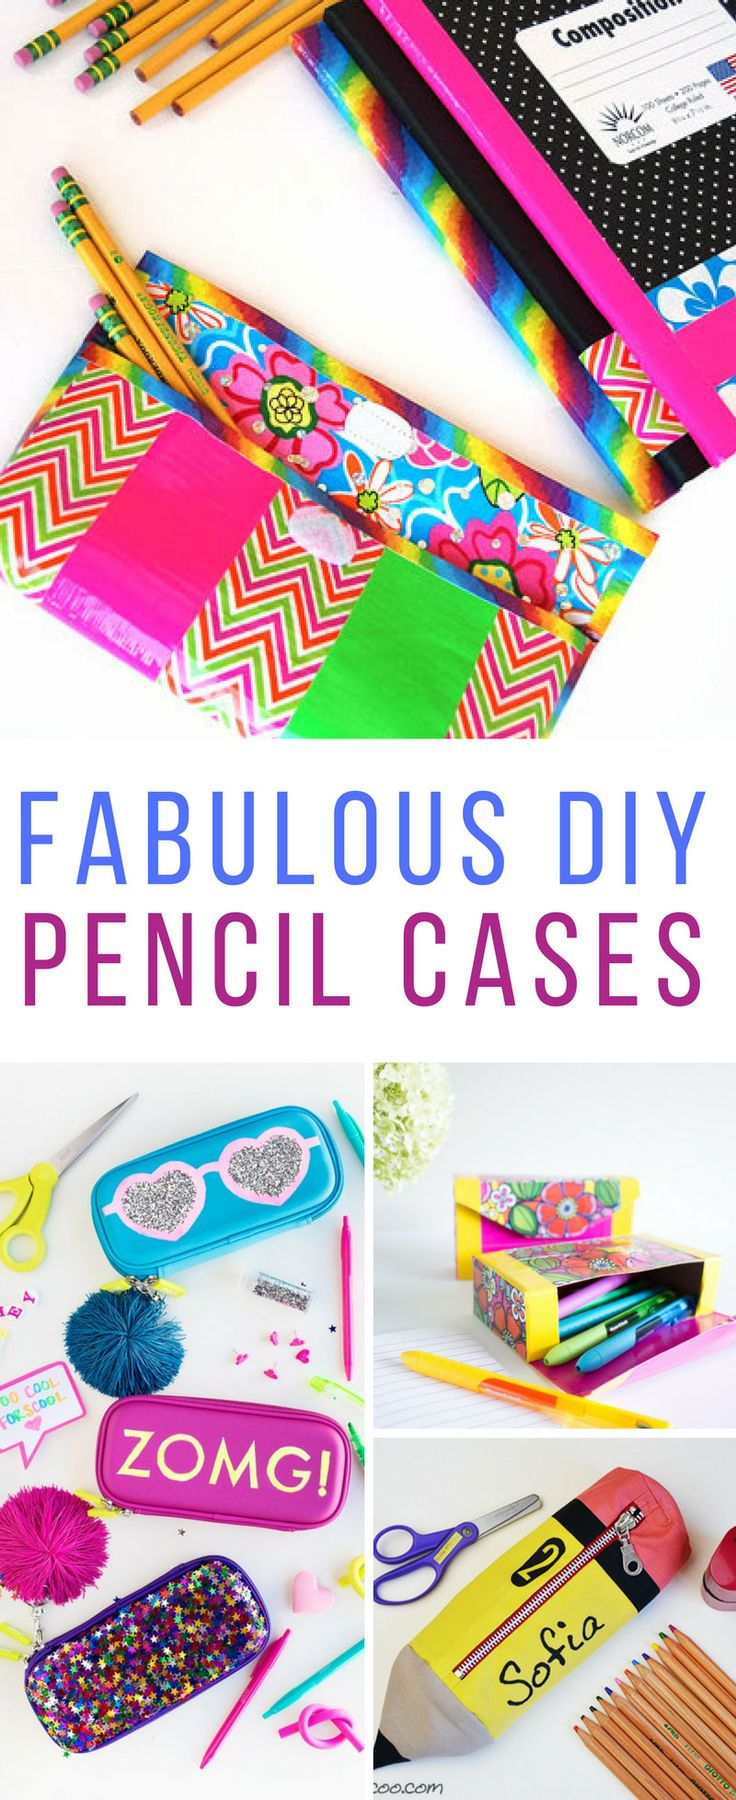 Loving these DIY pencil cases! Perfect for back to school!